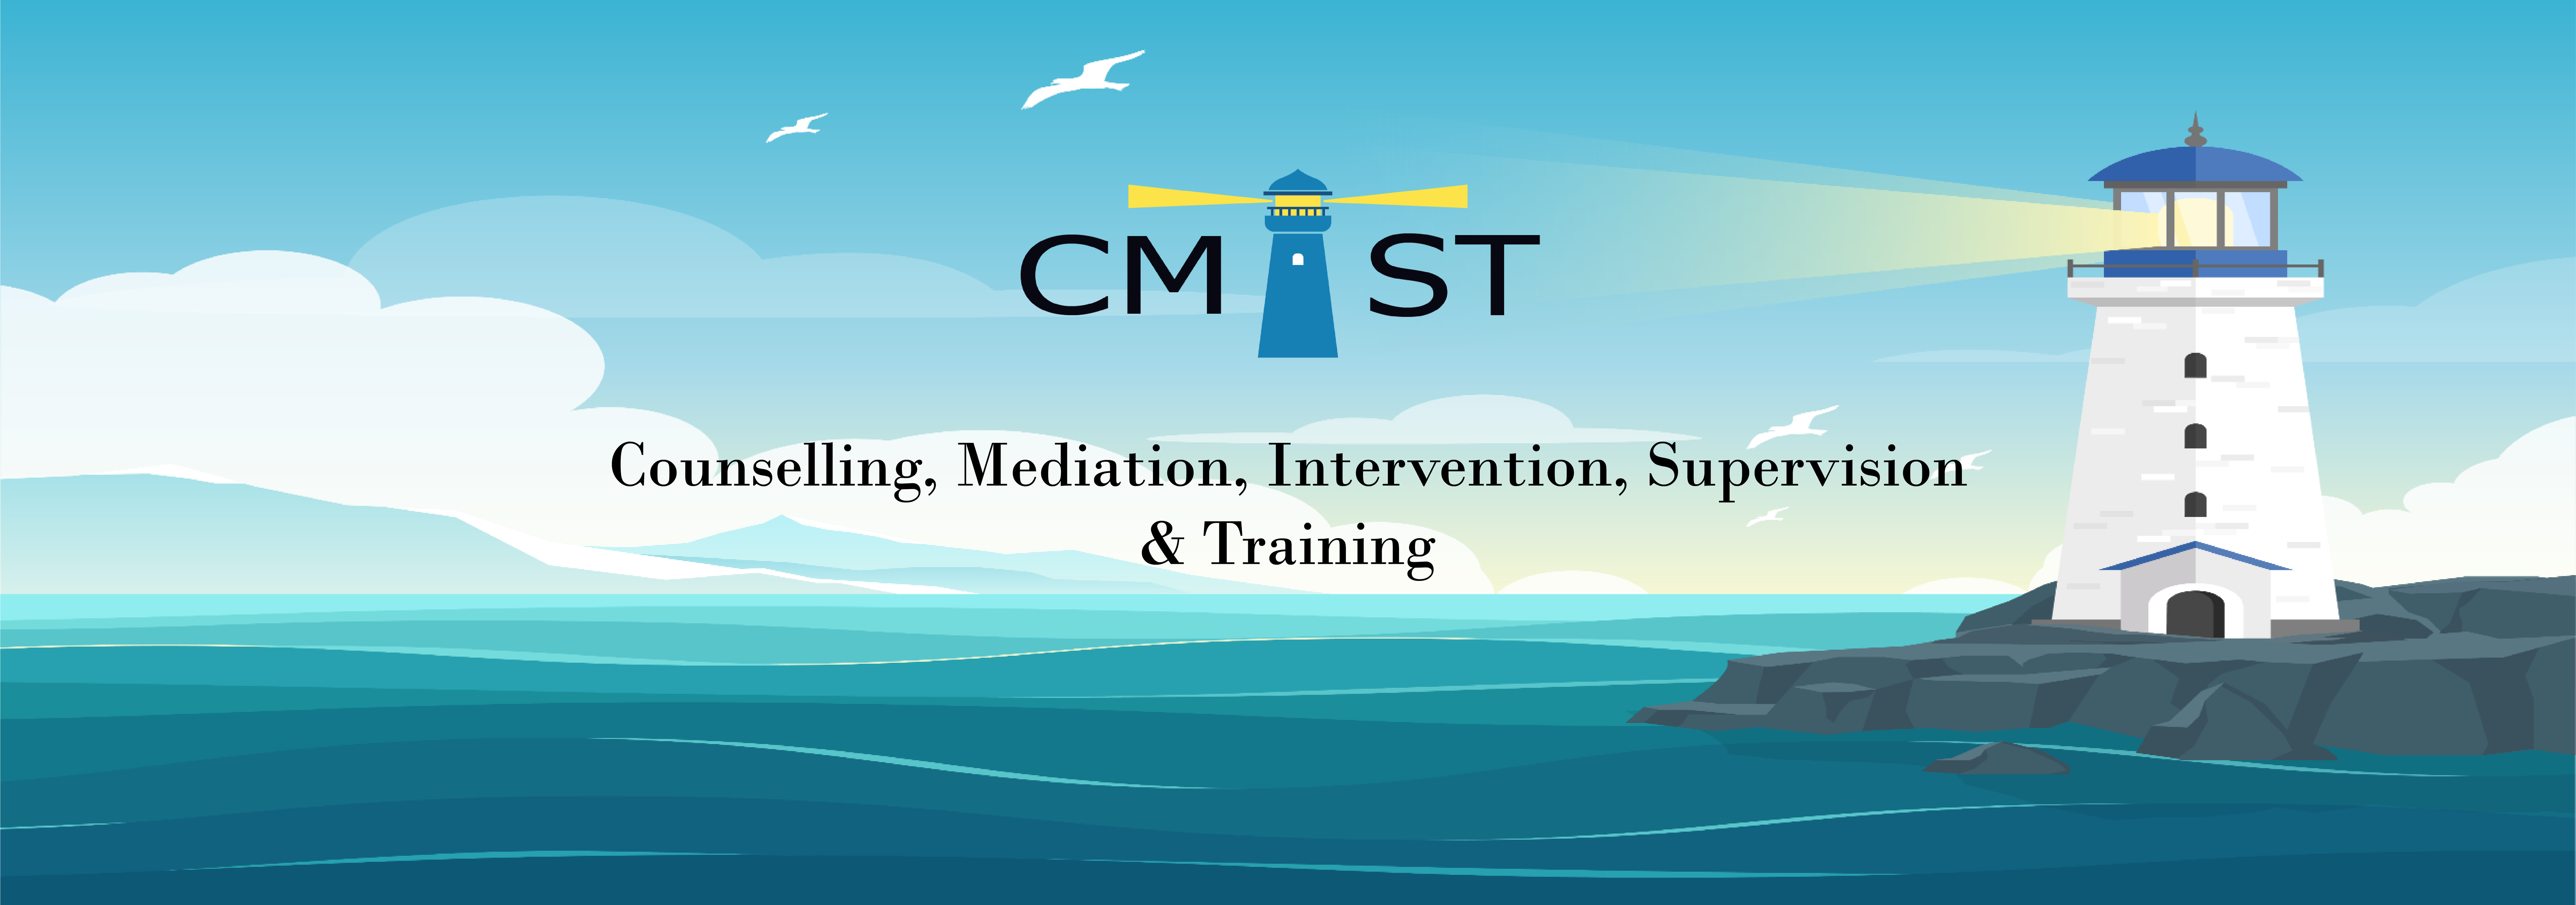 Banner for CMIST Counselling, Mediation, Intervention, Supervision and Training